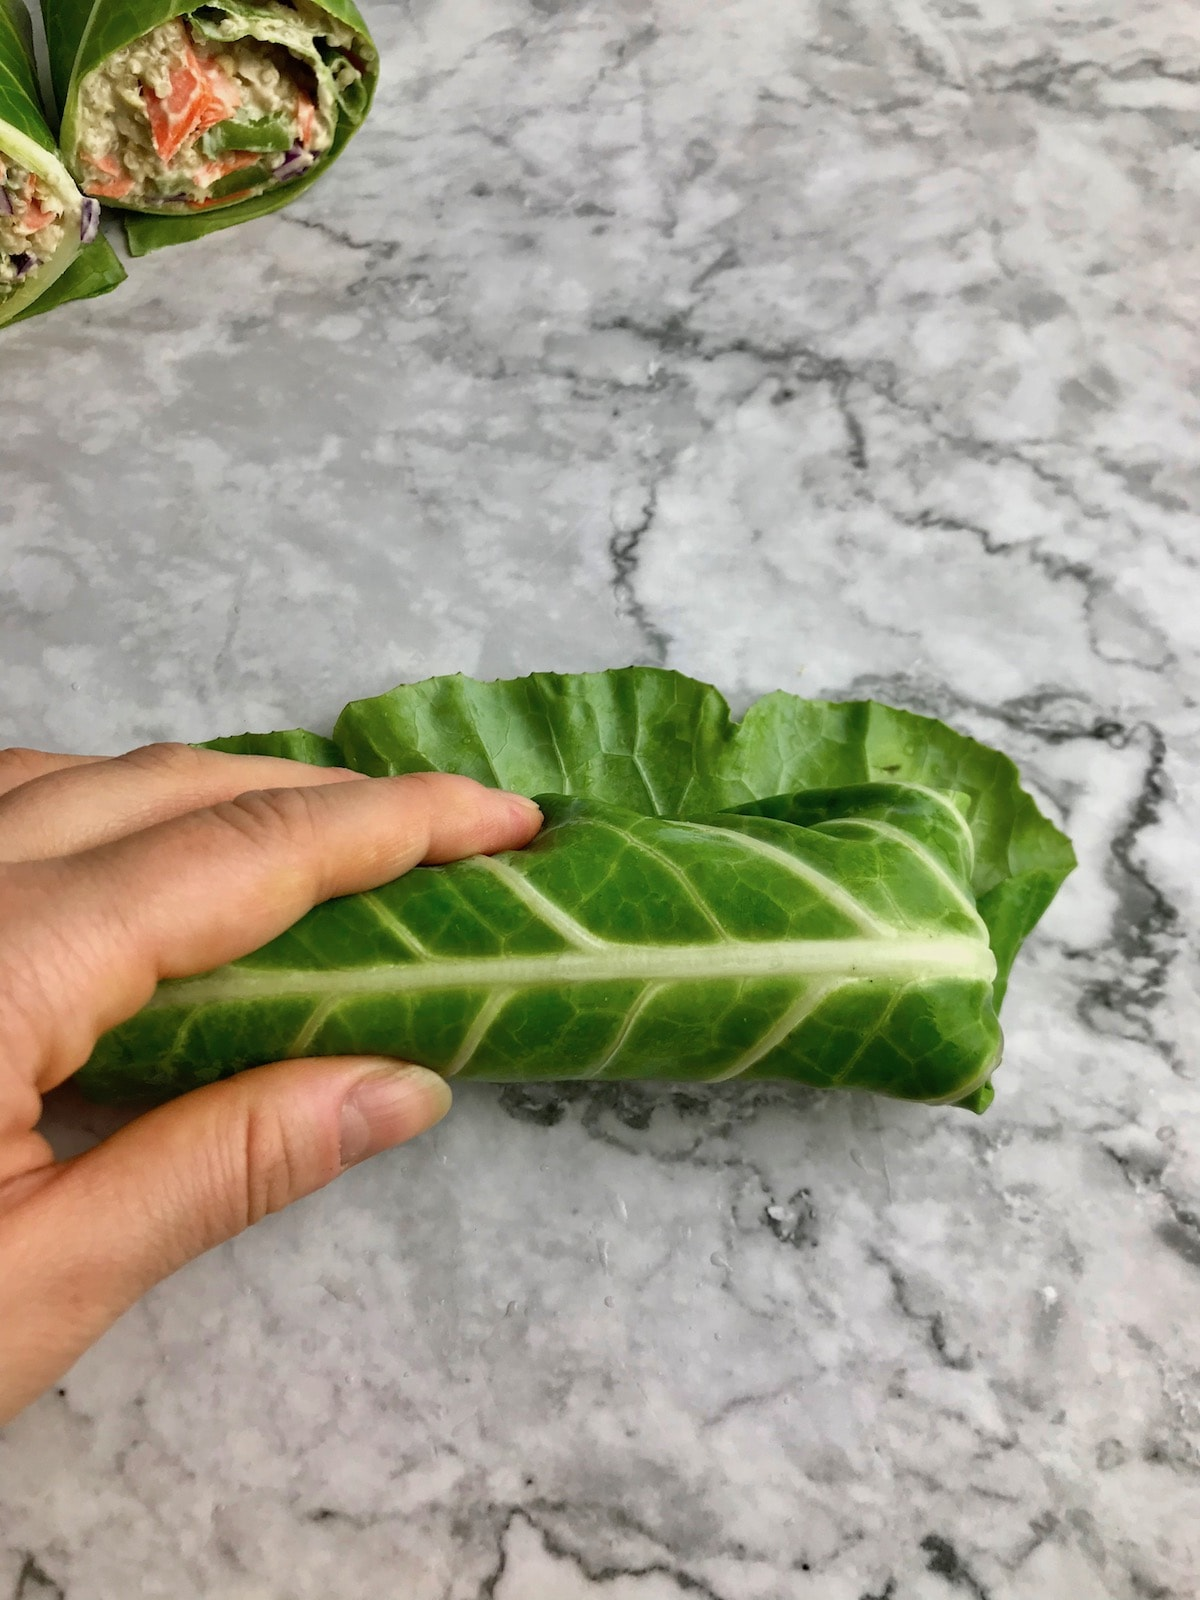 A hand holding a rolled up collard wrap on a table.